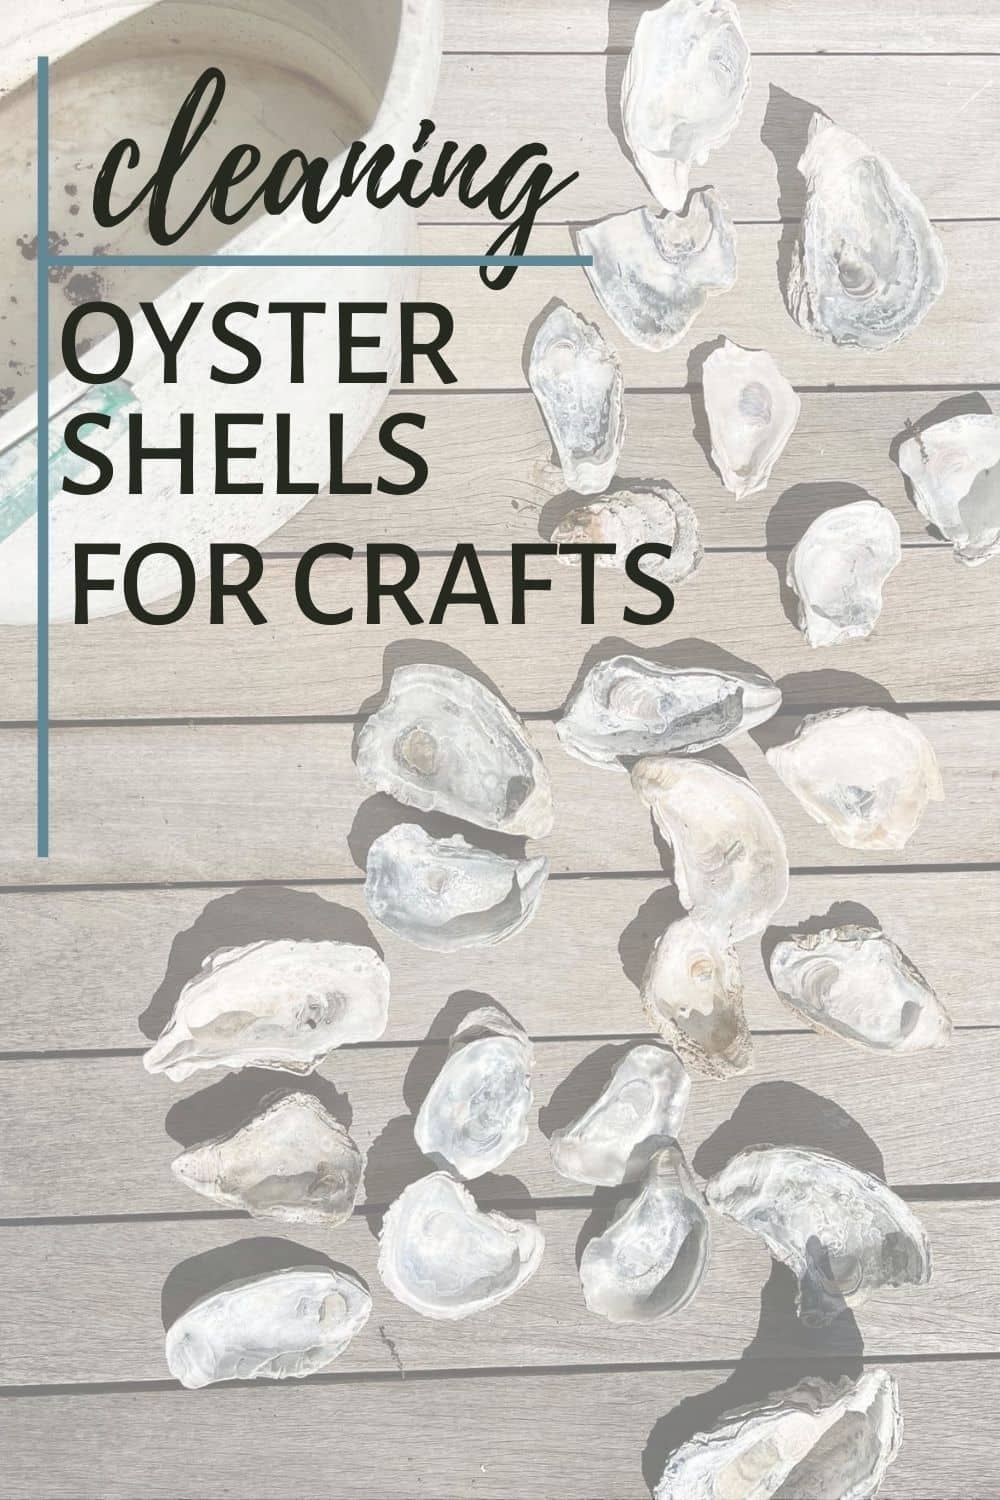 How to Clean Oyster Shells For Crafts